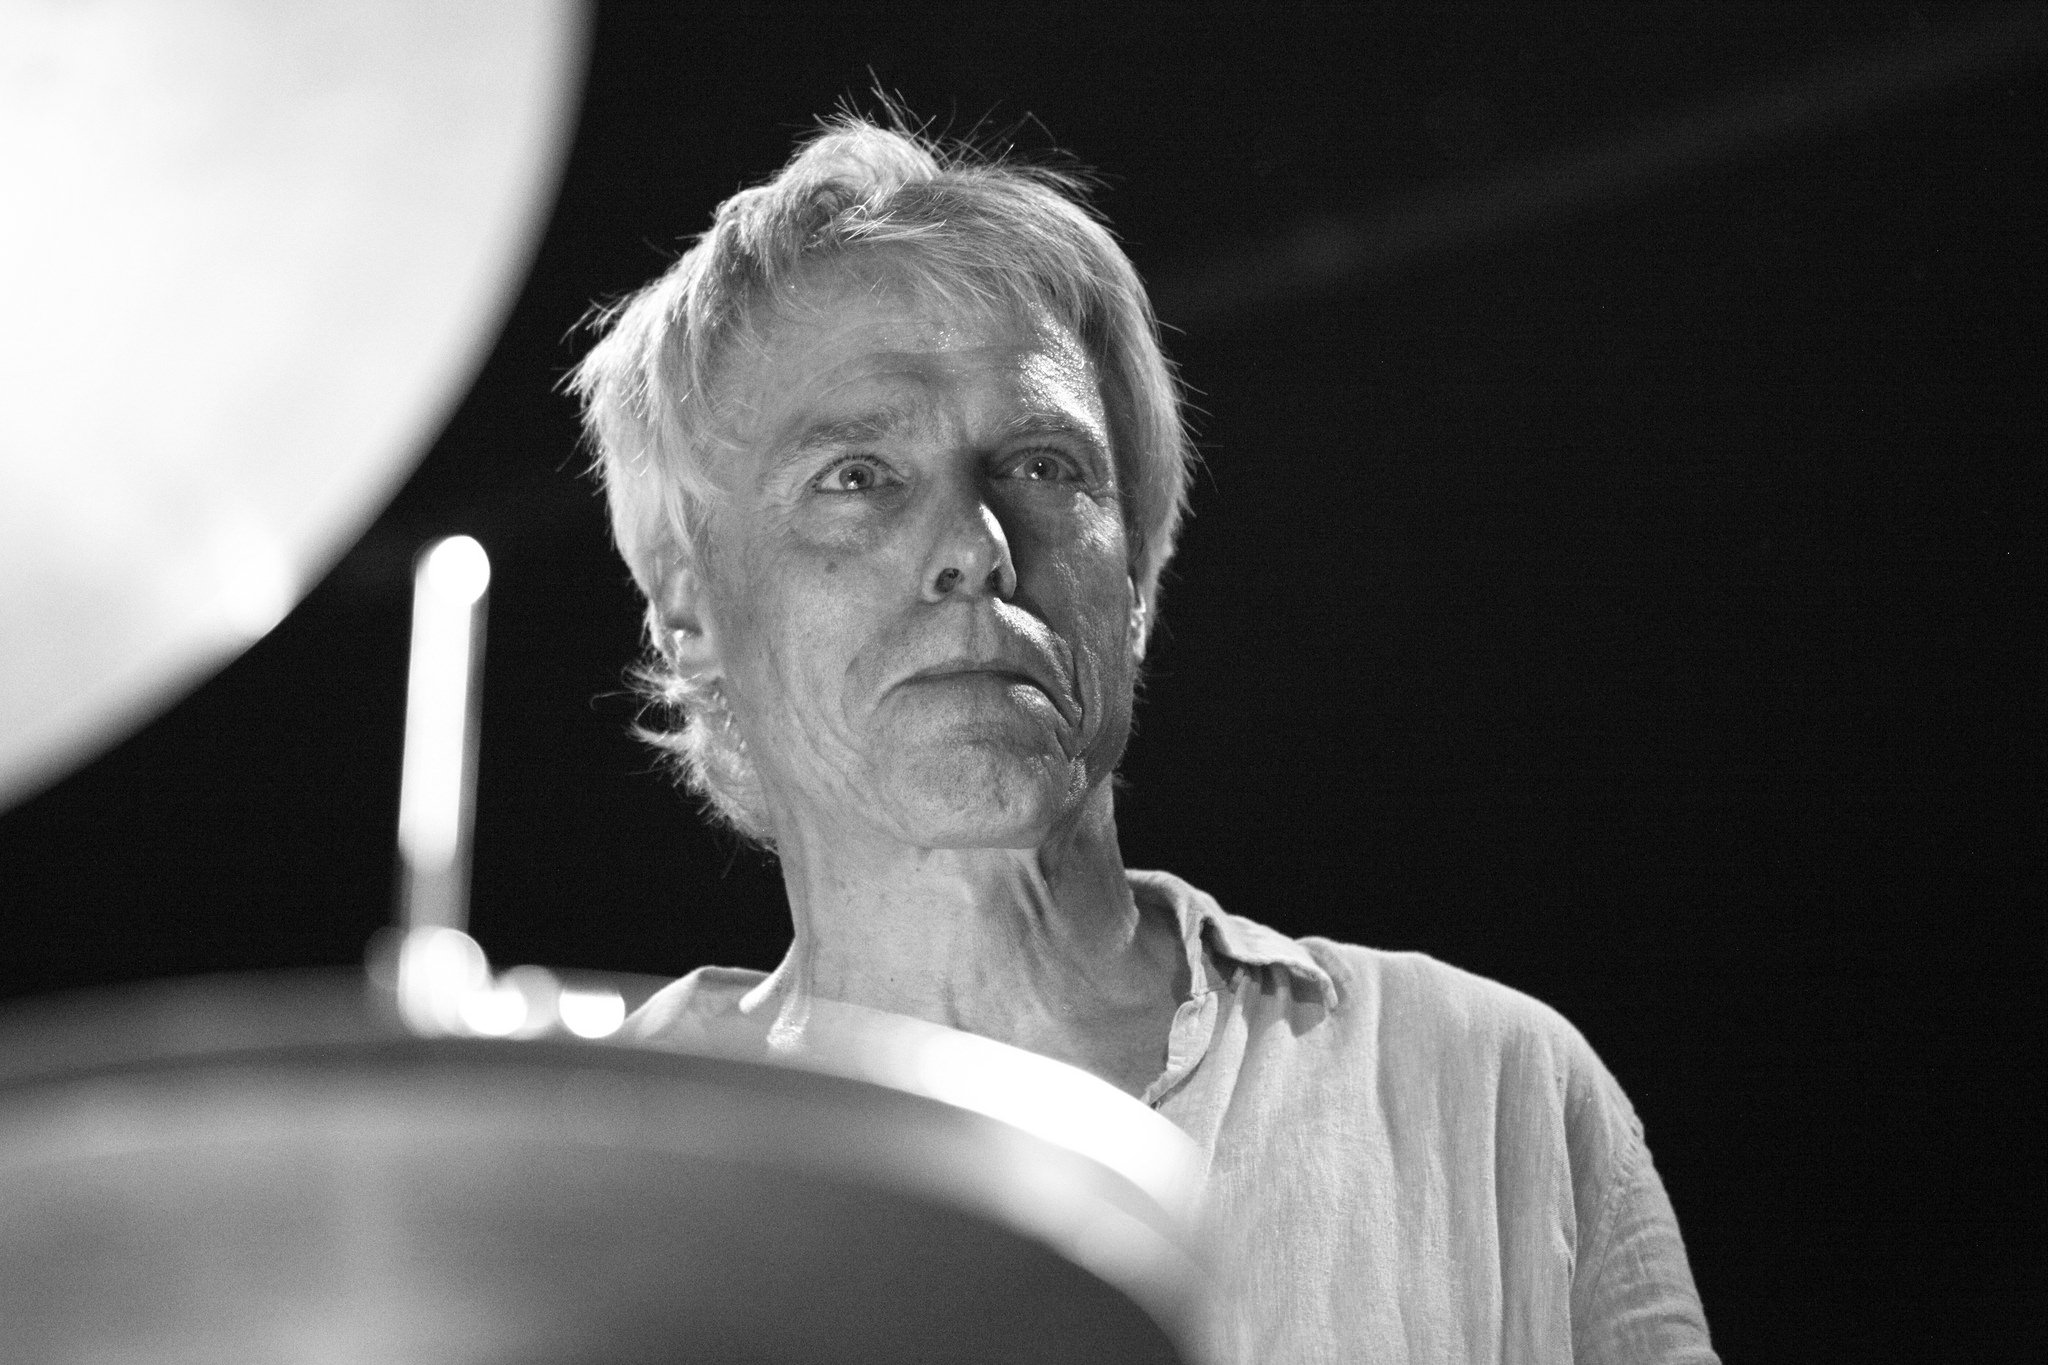 Gerry Hemingway (drums) at Unlimited 30 (festival)